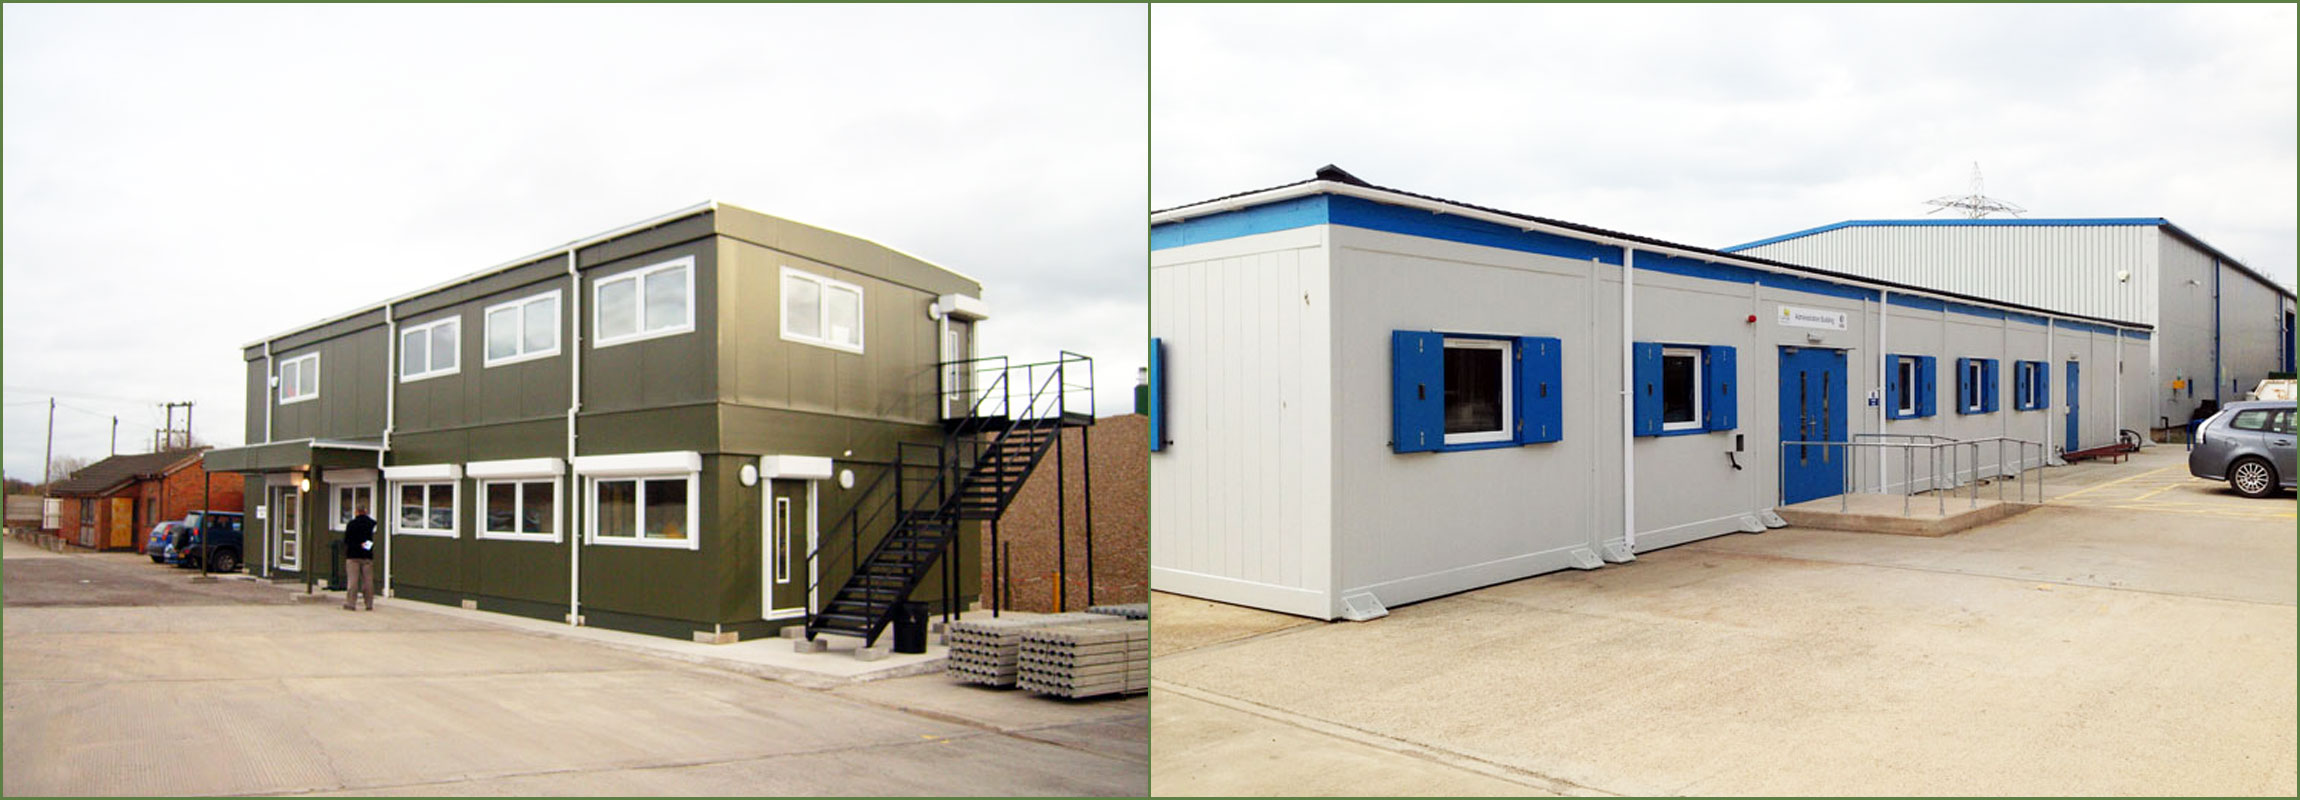 Modular Buildings Range